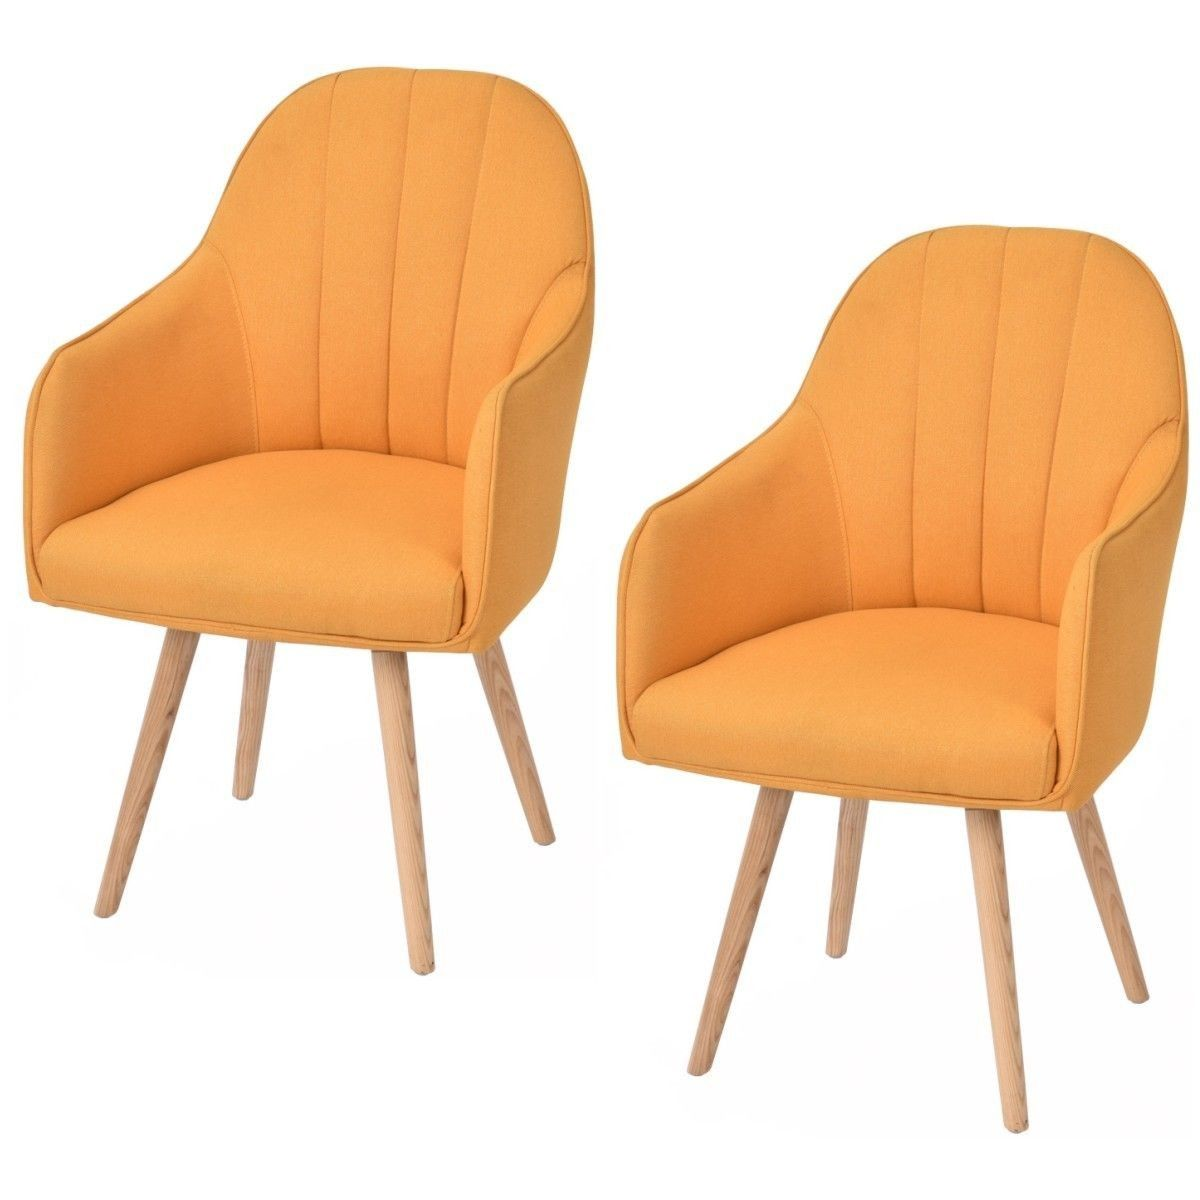 Best Set Of 2 Yellow Accent Dining Chairs With Wood Legs Good 400 x 300